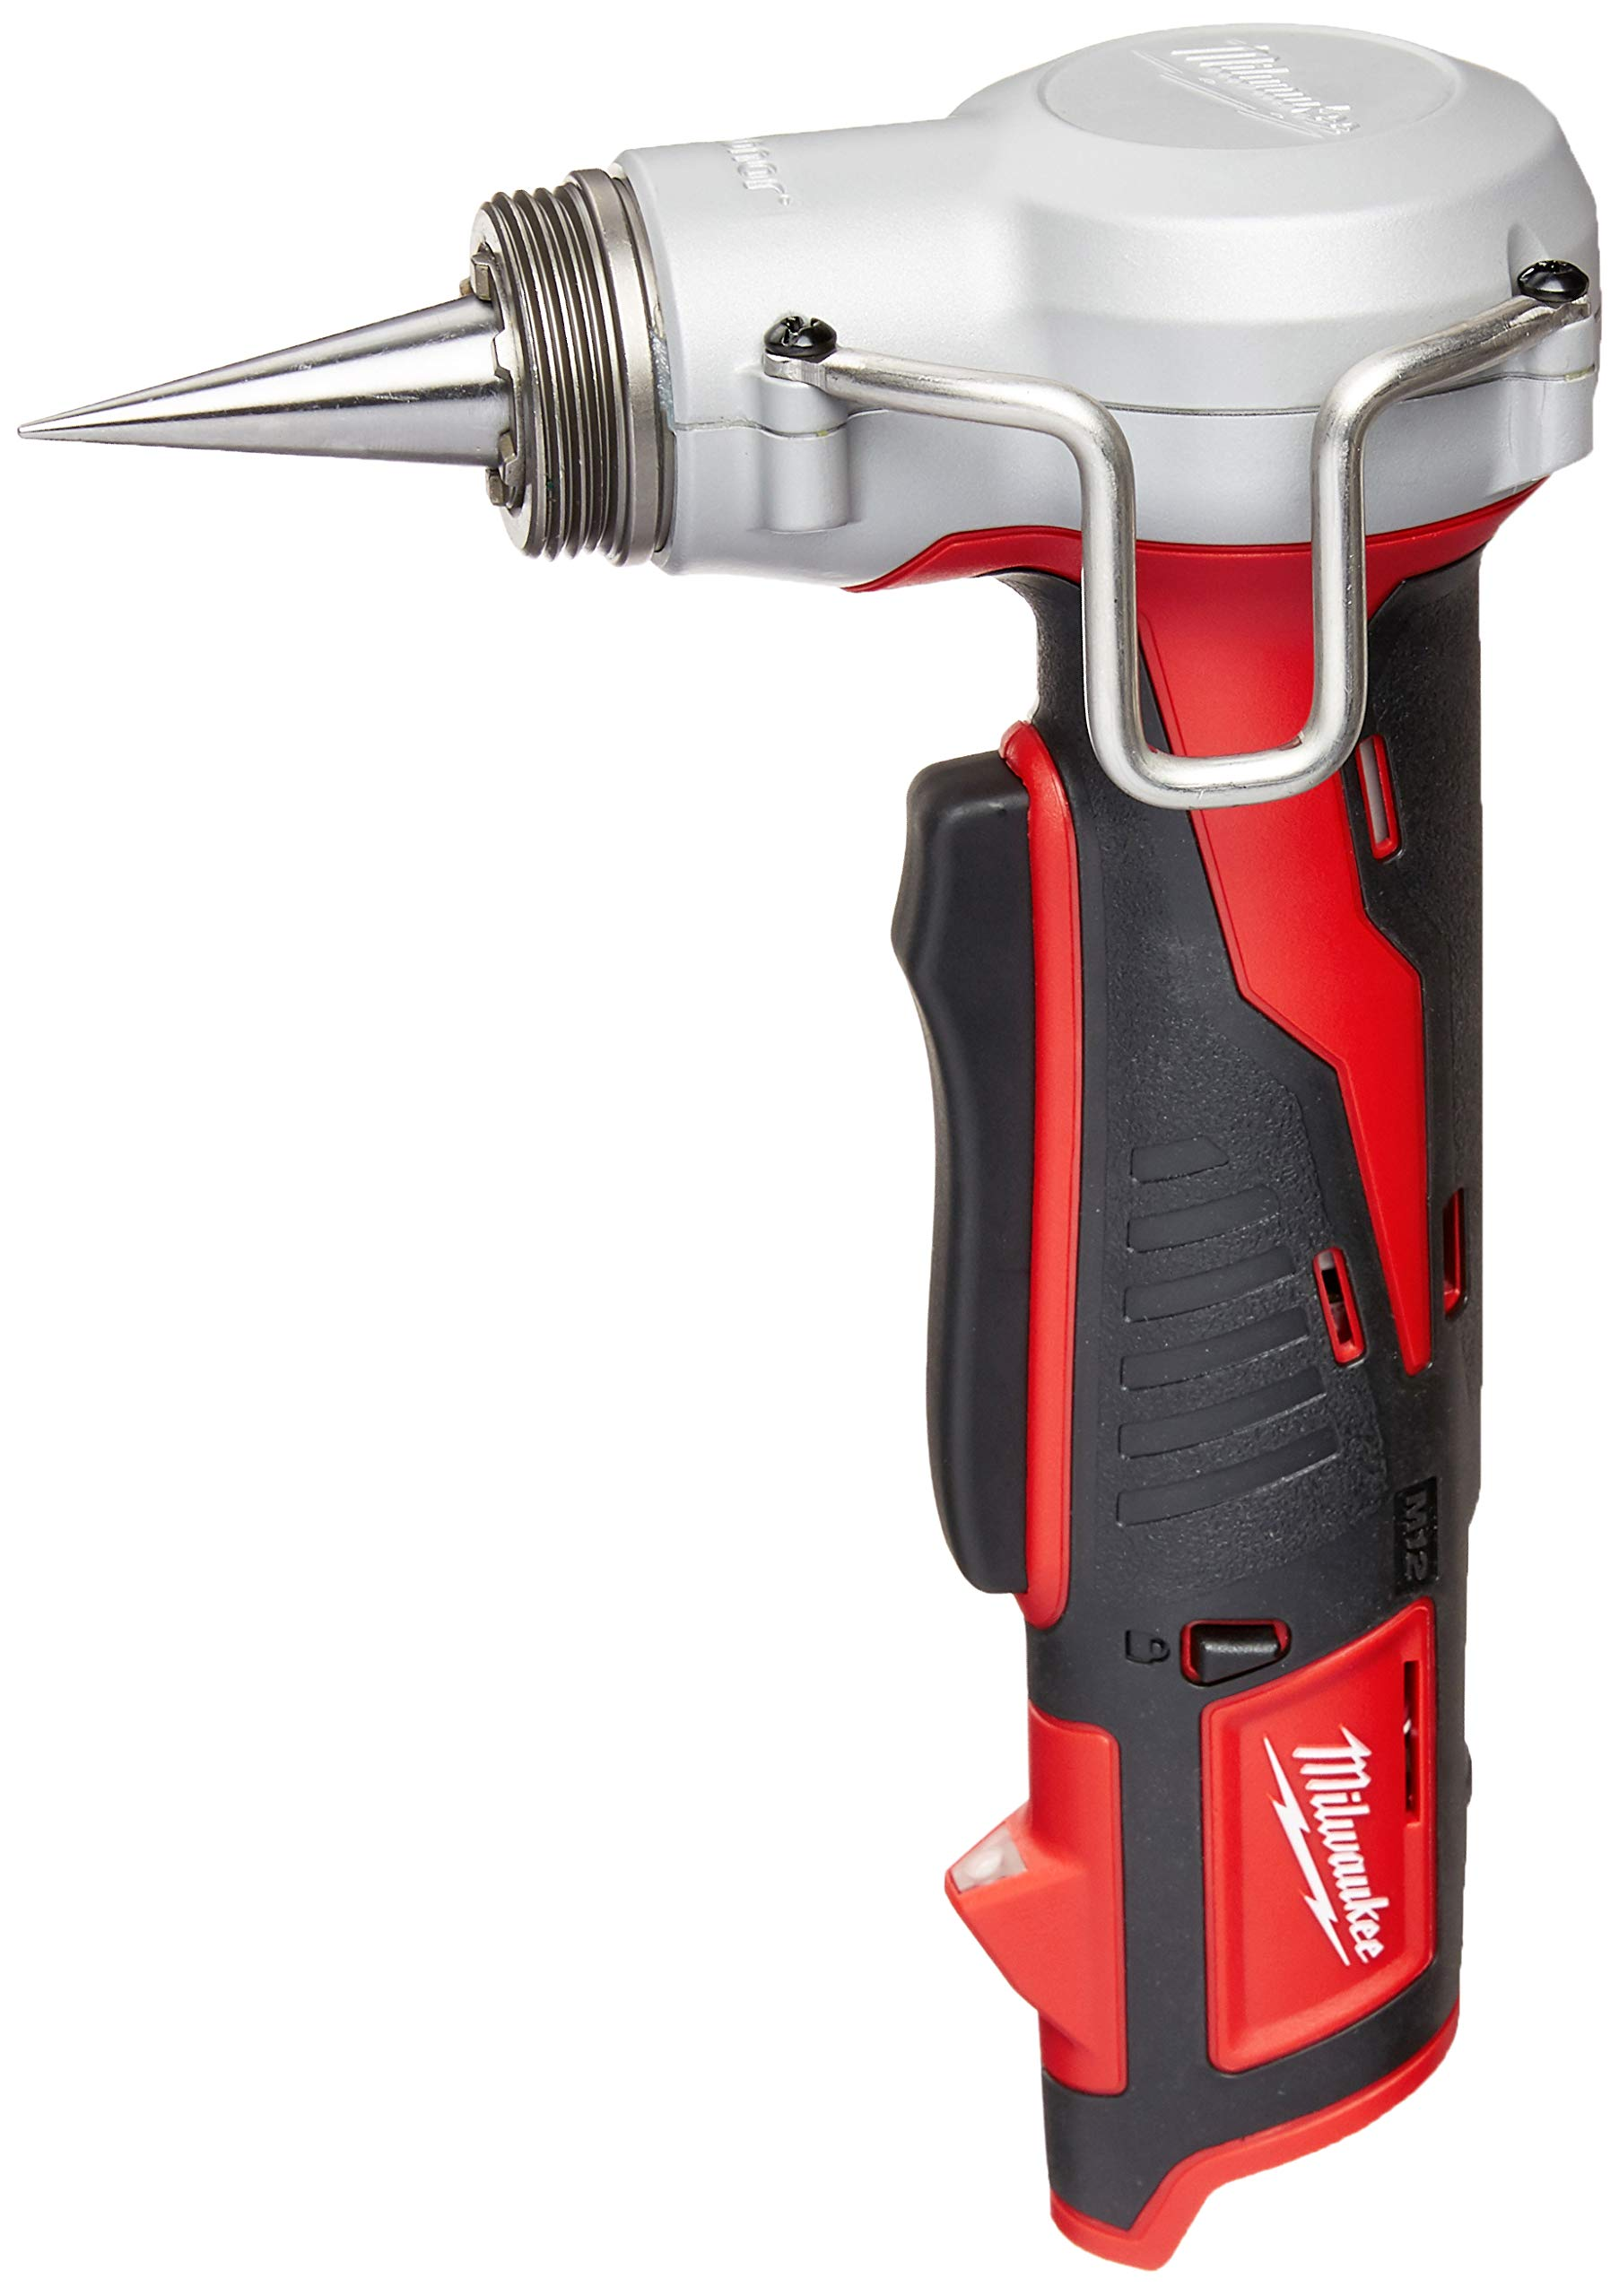 Bare-Tool Milwaukee 2432-20 M12 12-Volt Propex Expansion Tool (Tool Only, No Battery) by Milwaukee